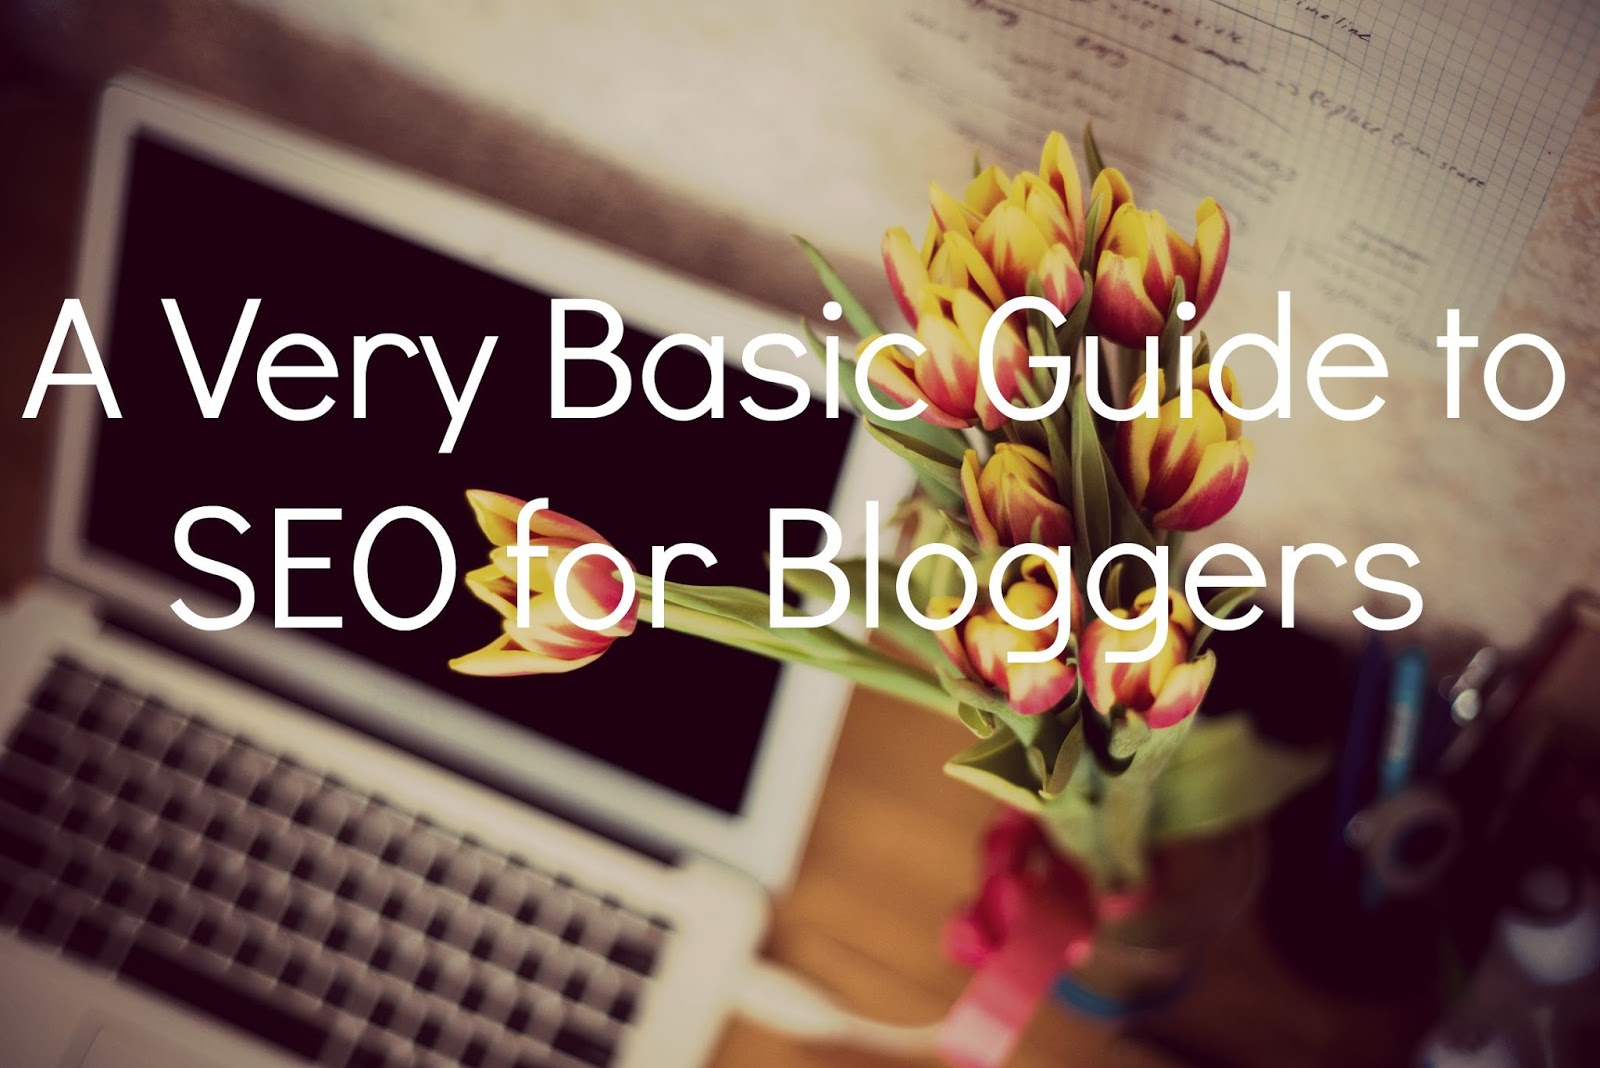 a very basic guide to SEO for bloggers